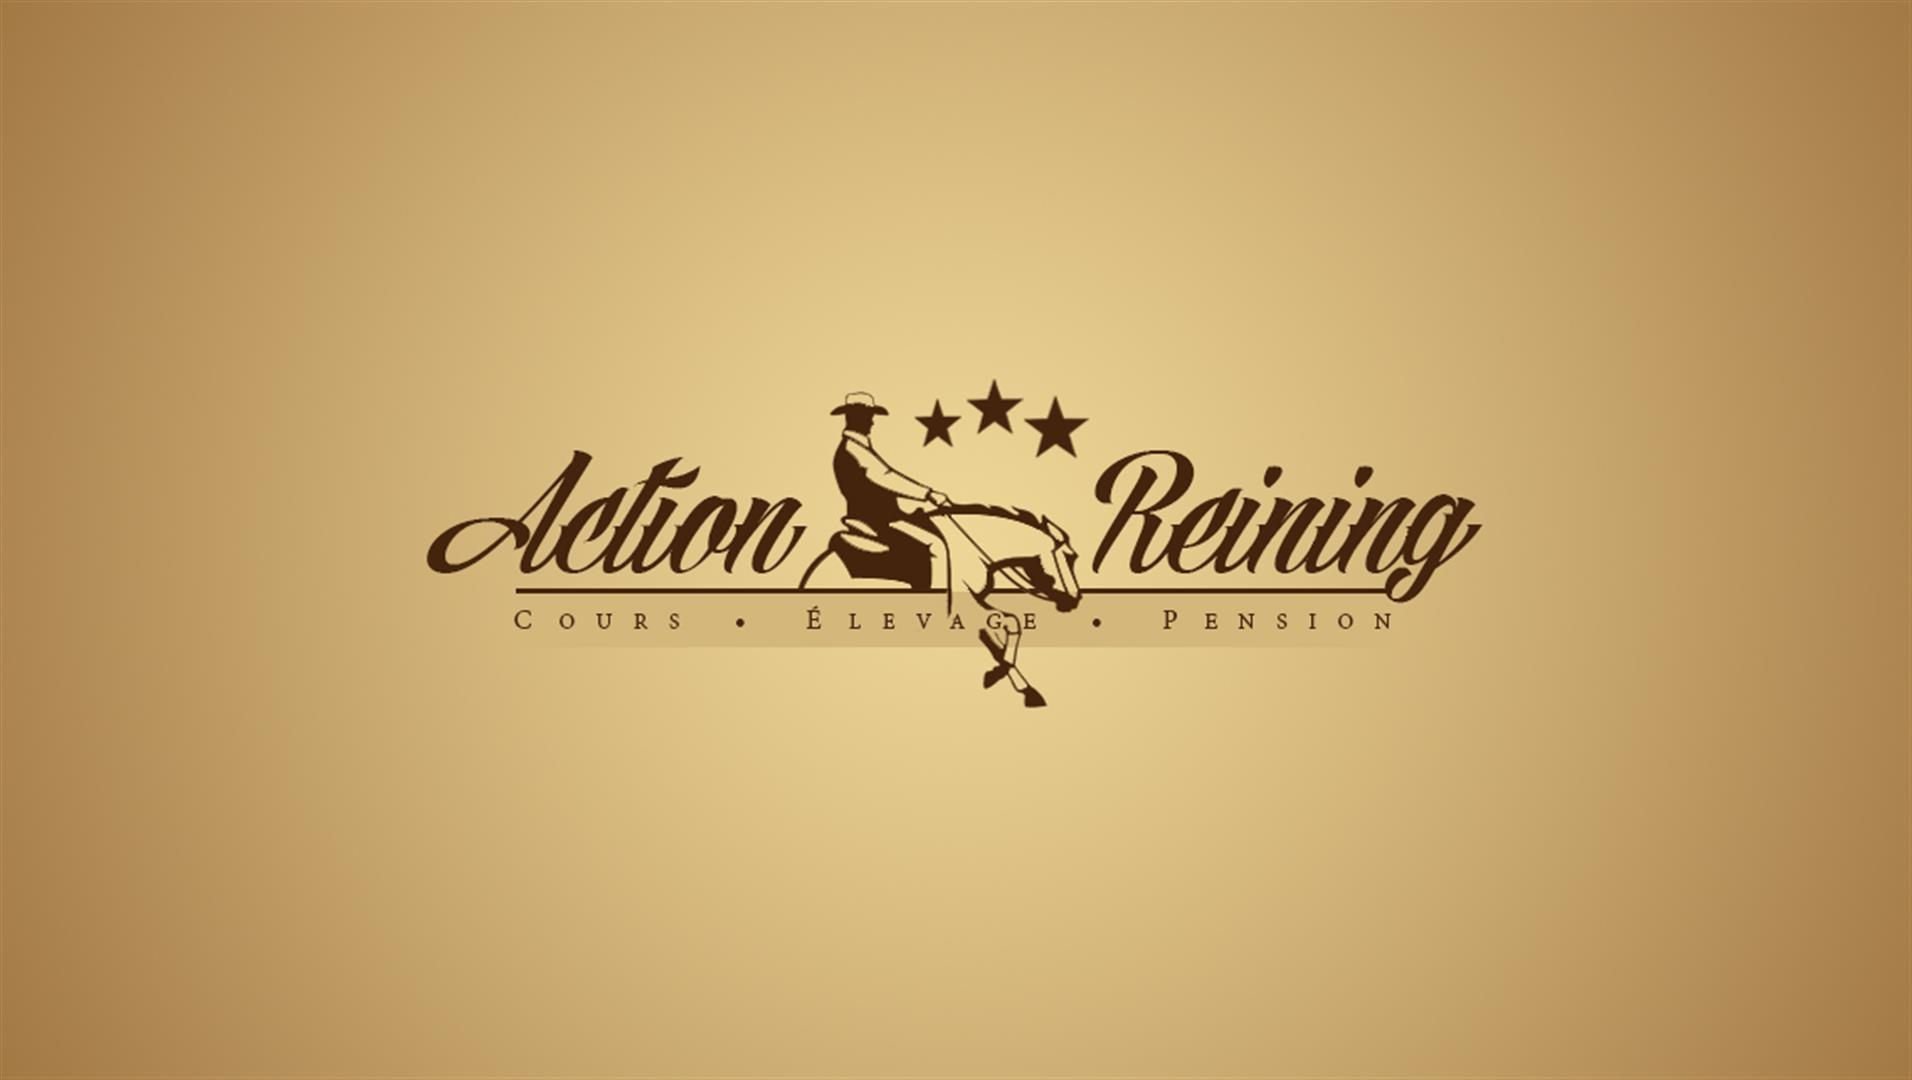 3 action reining logotype creation logo